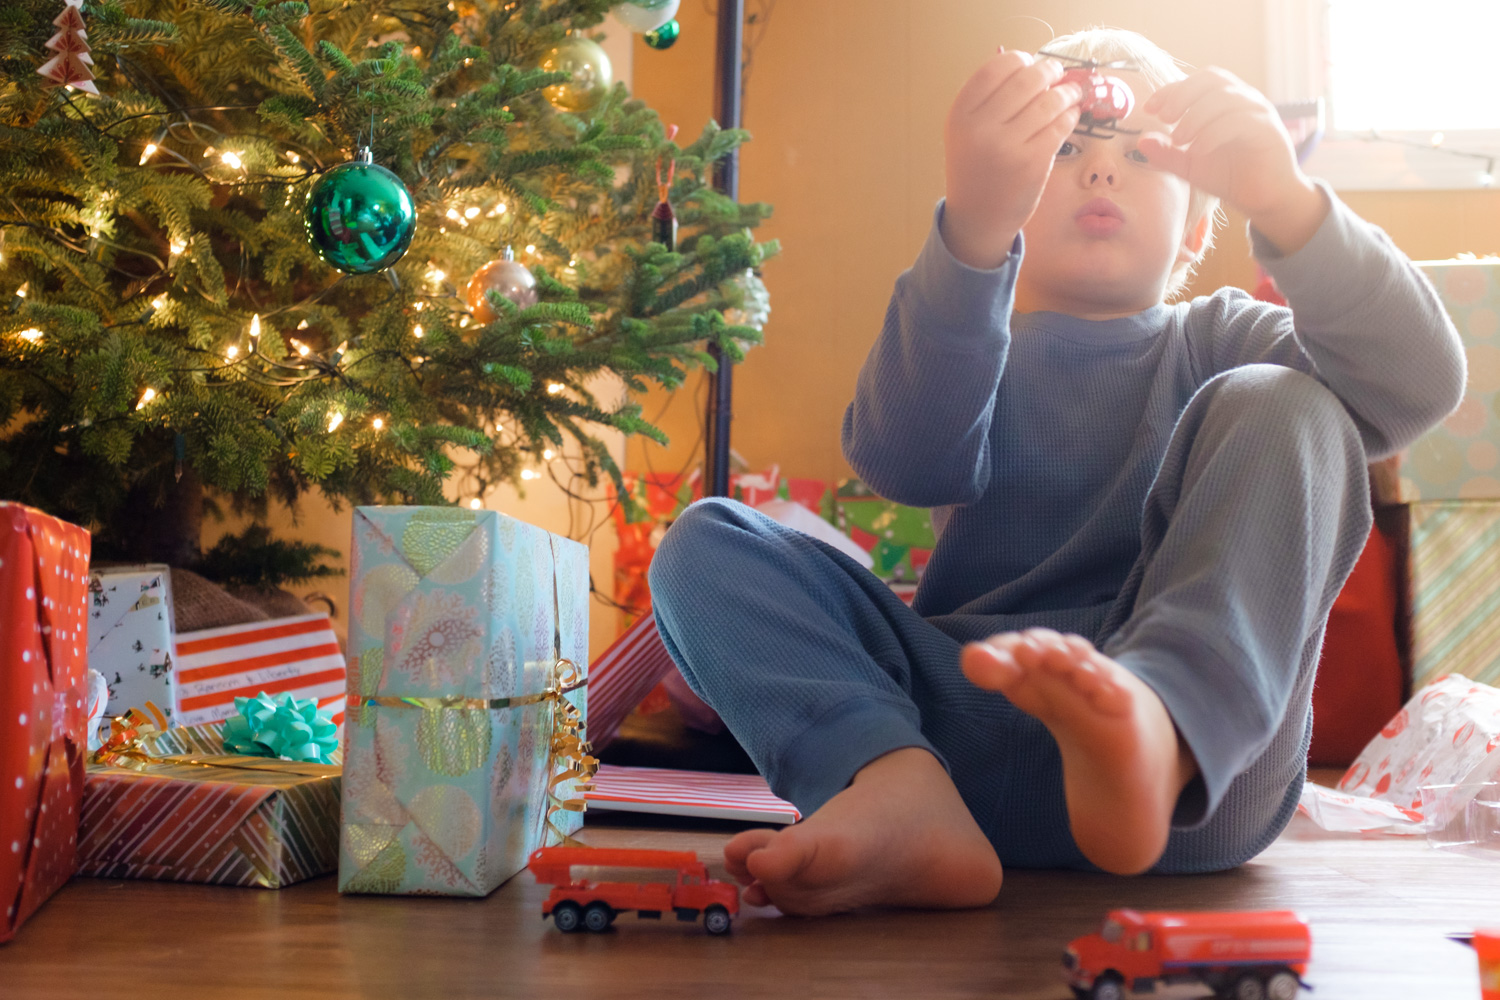 5 - How to Capture Candid Moments This Christmas